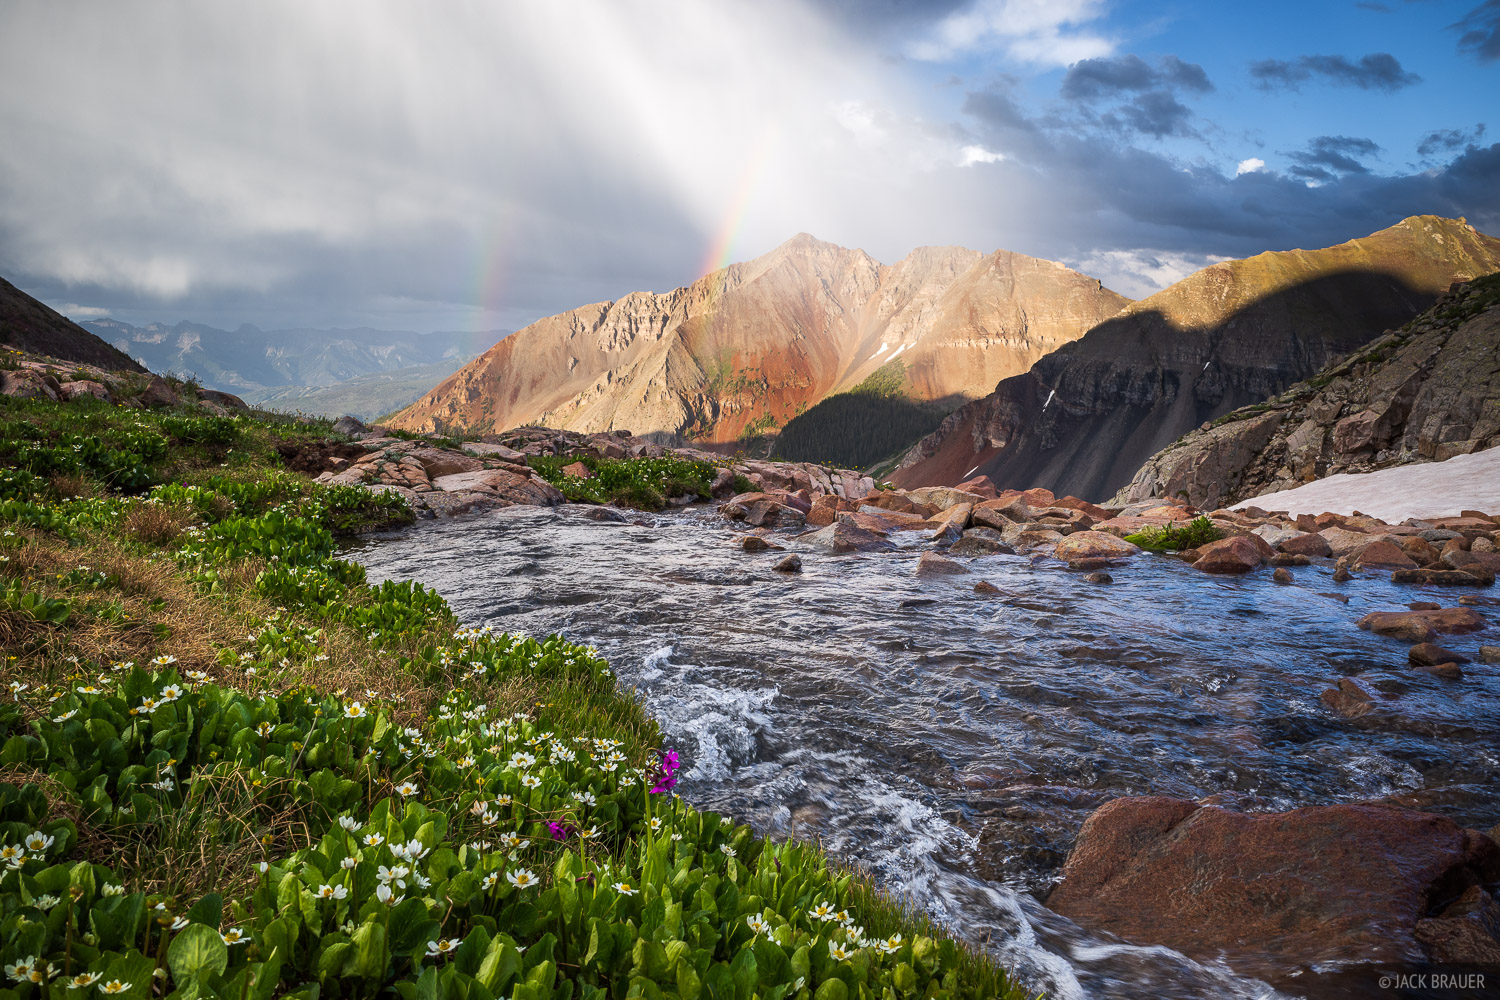 Colorado, Lizard Head Wilderness, San Juan Mountains, San Miguel Range, Sunshine Mountain, rainbow, wildflowers, photo